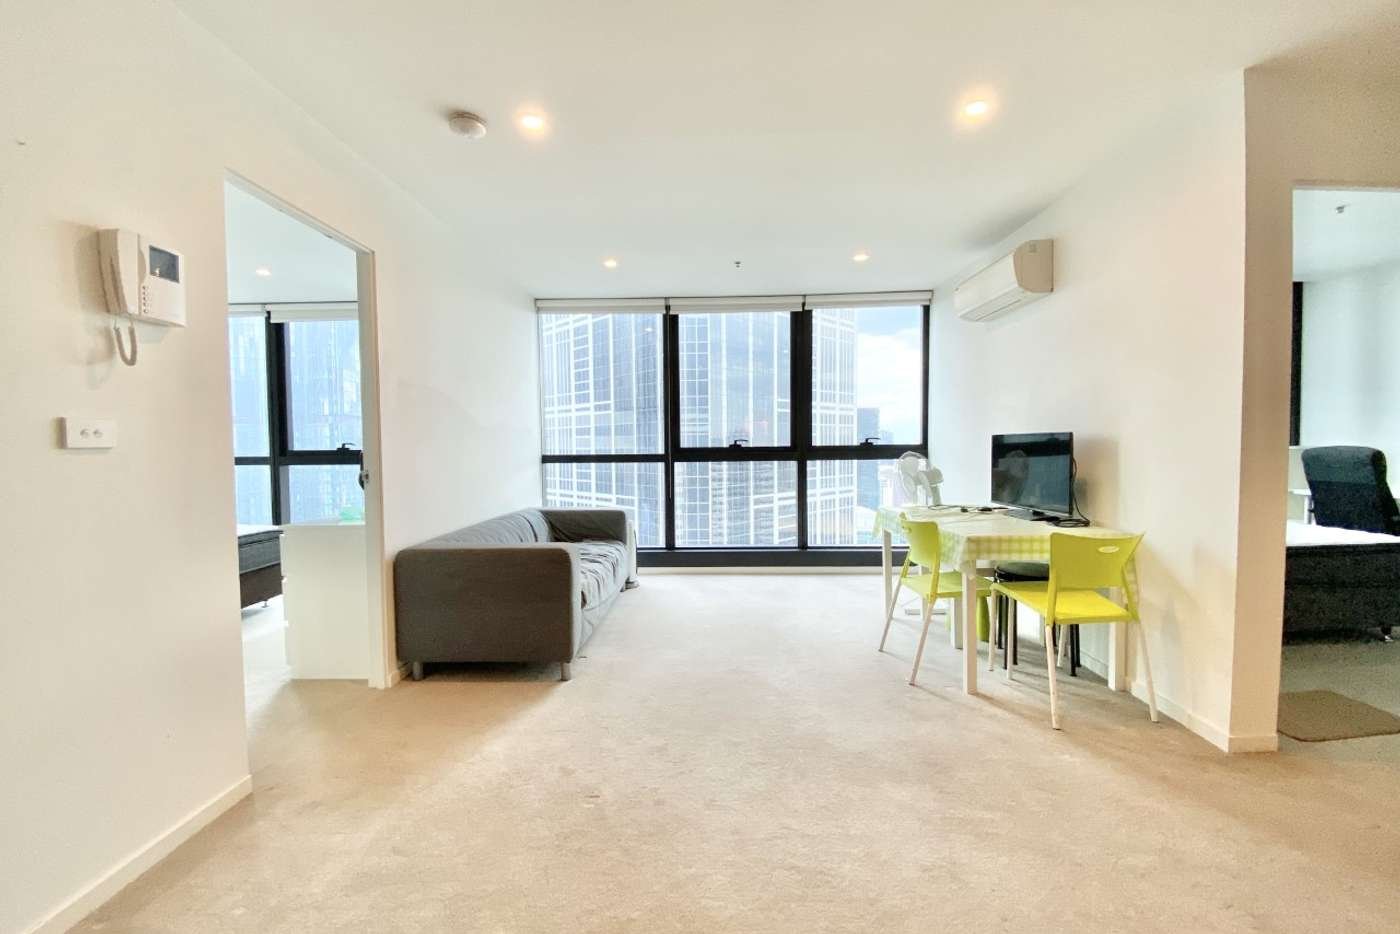 Sixth view of Homely apartment listing, 2908/8 Sutherland Street, Melbourne VIC 3000